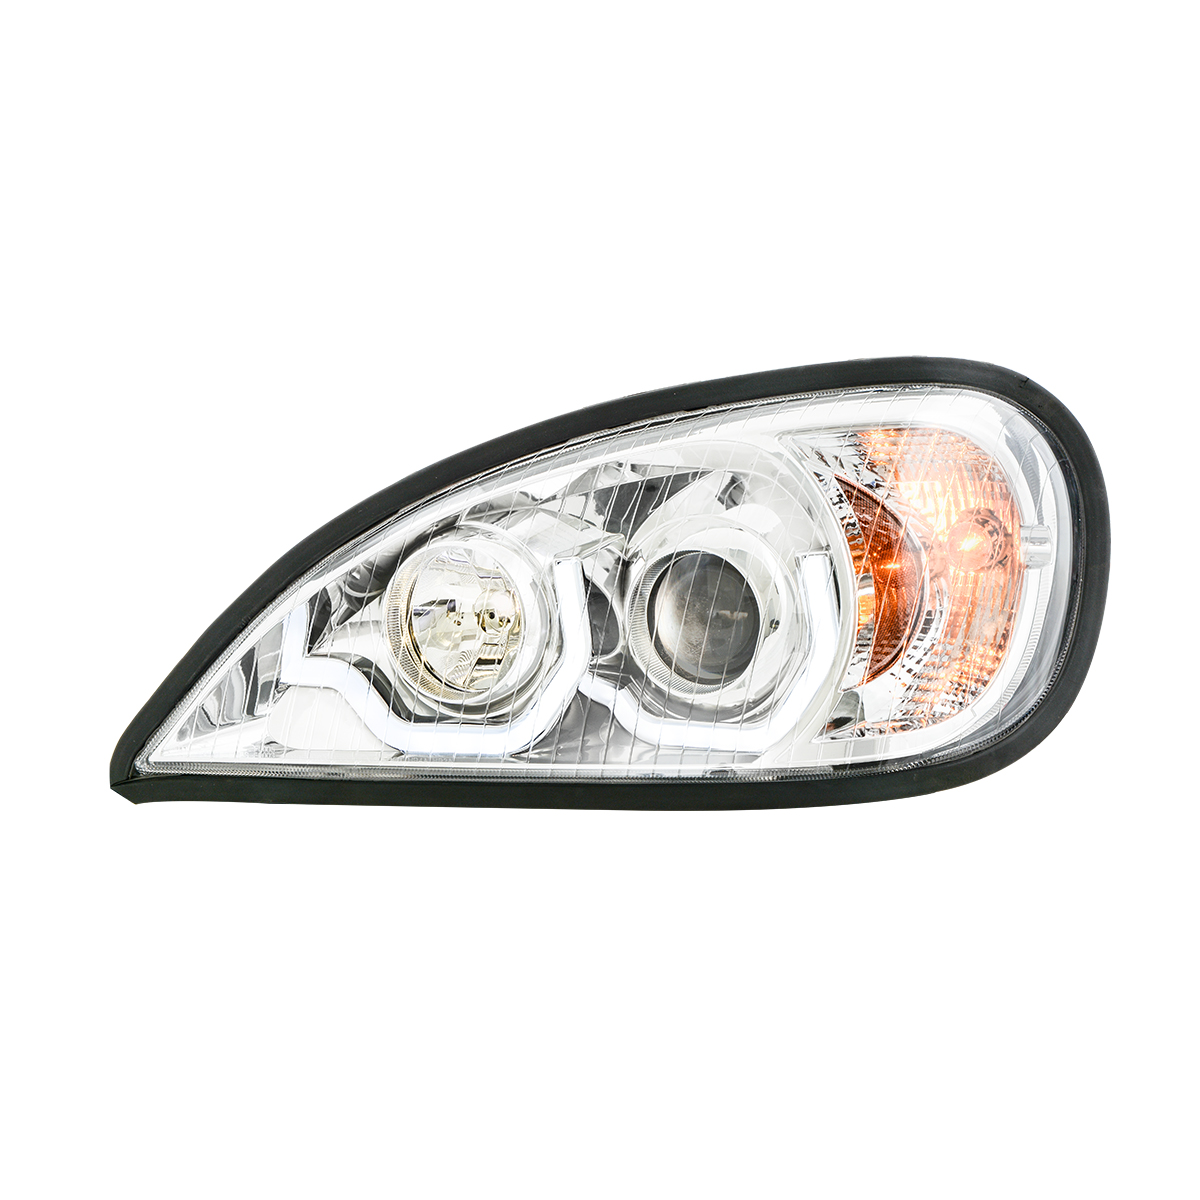 Freightliner Columbia Chrome Projector Headlight w/ White LED Running Light